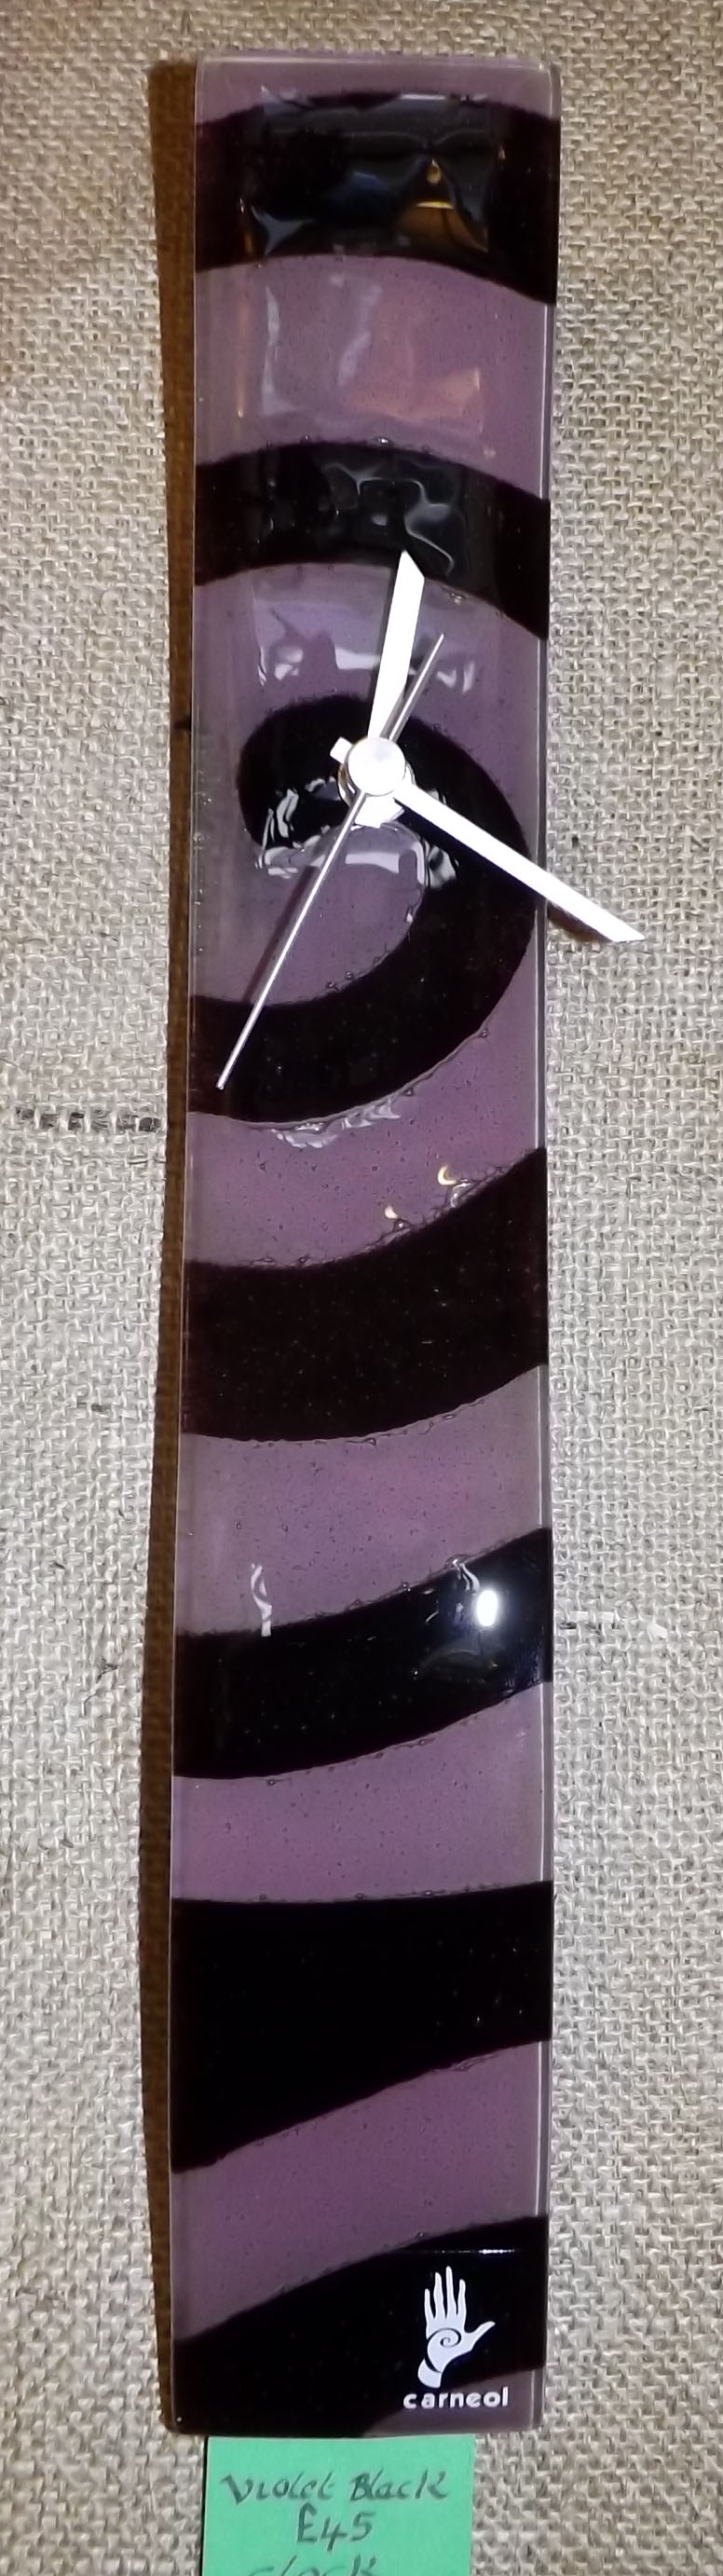 Glass wall clock black and violet colours.